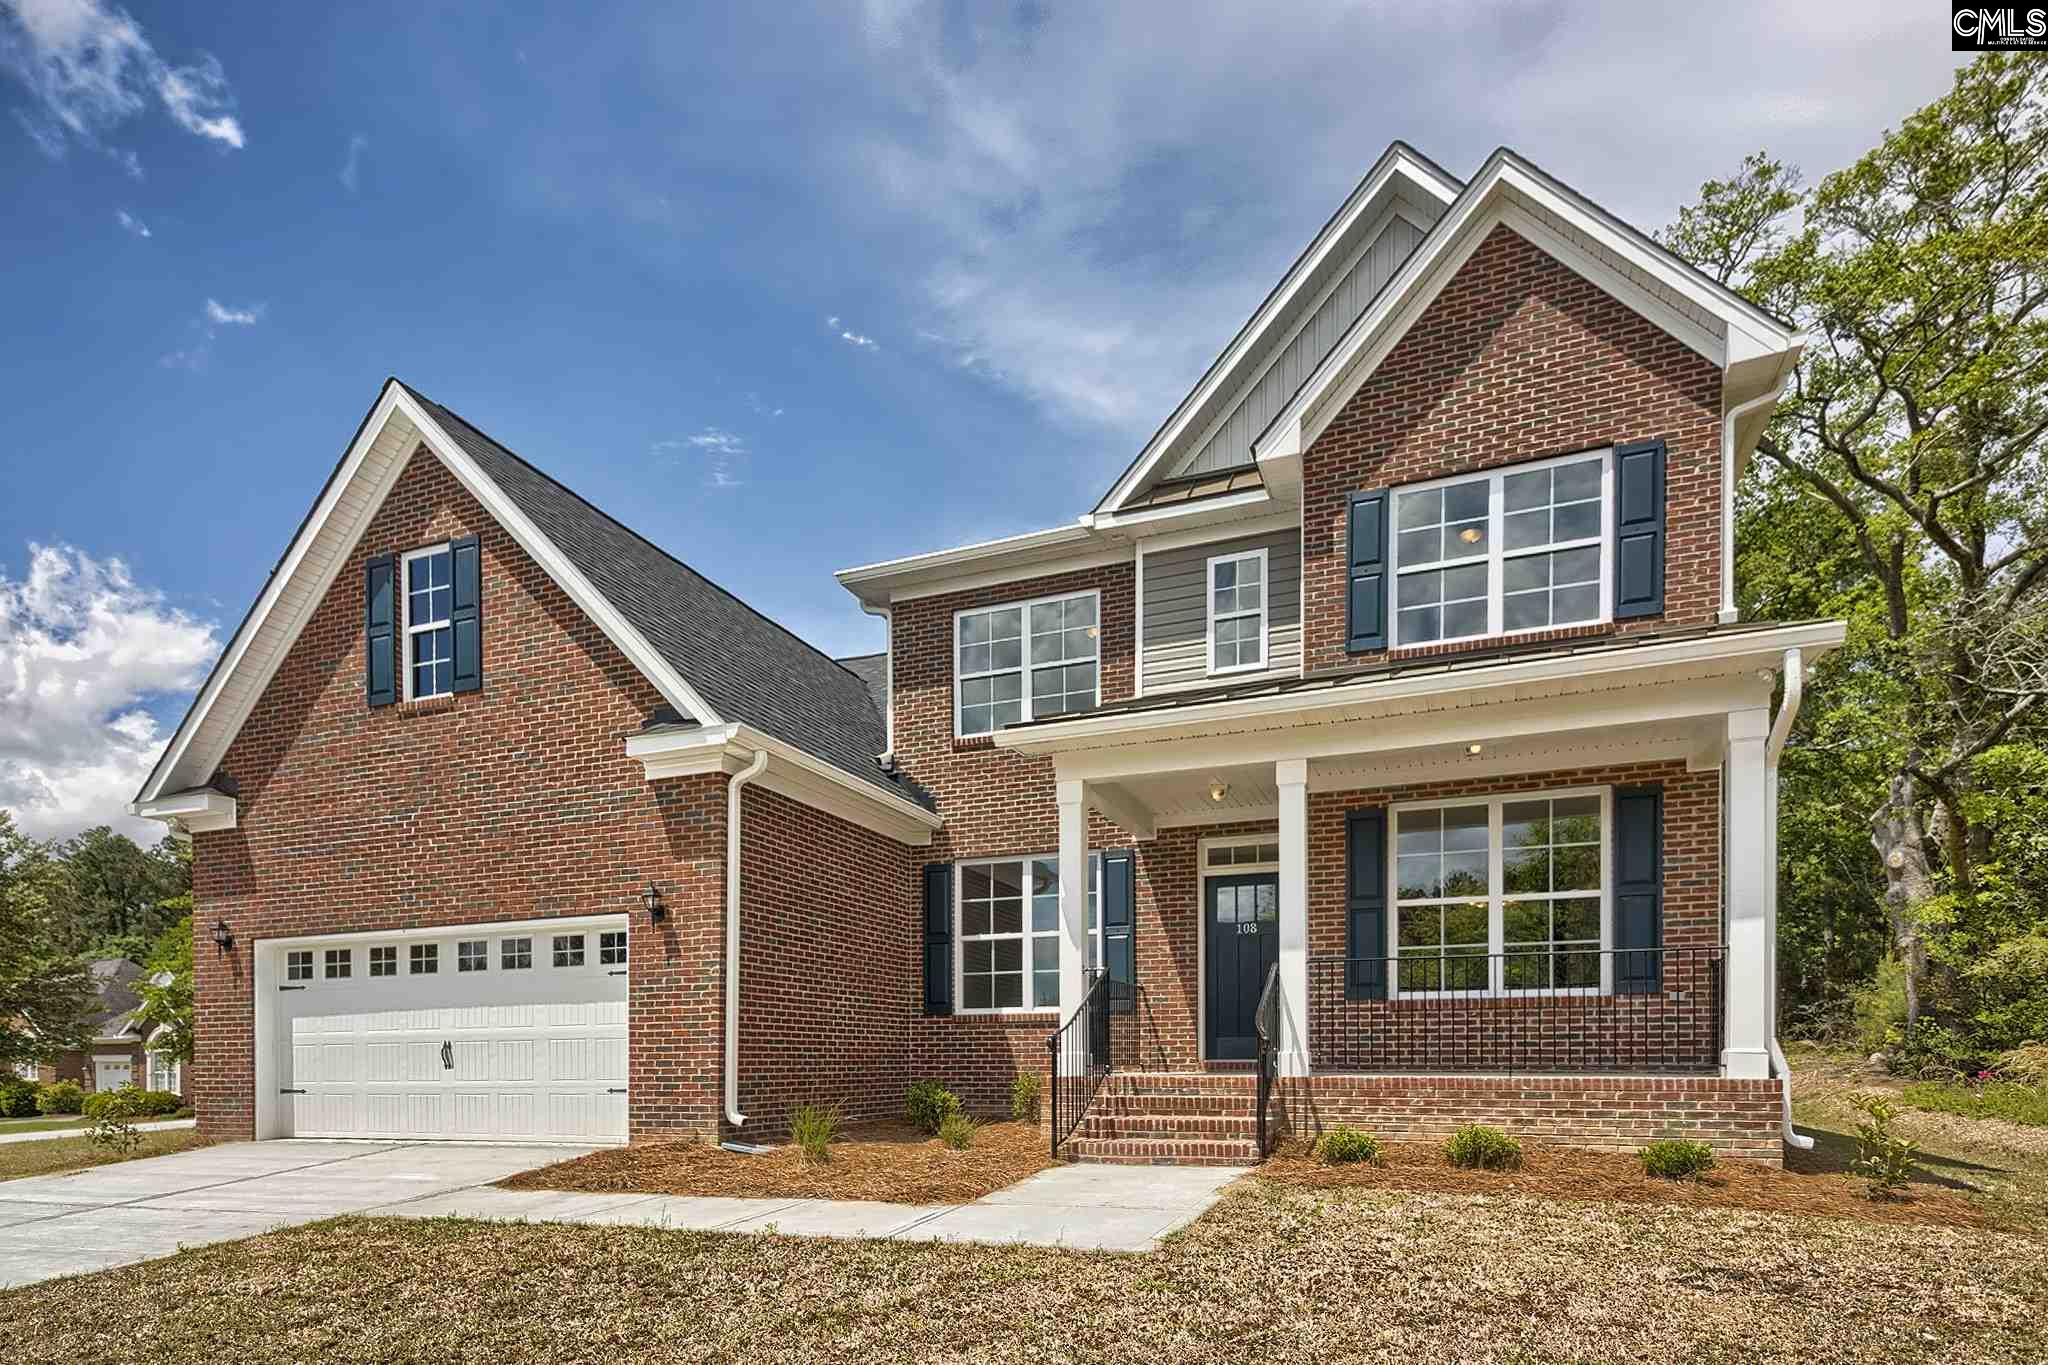 108 Mariner's Creek #3 Lexington, SC 29072